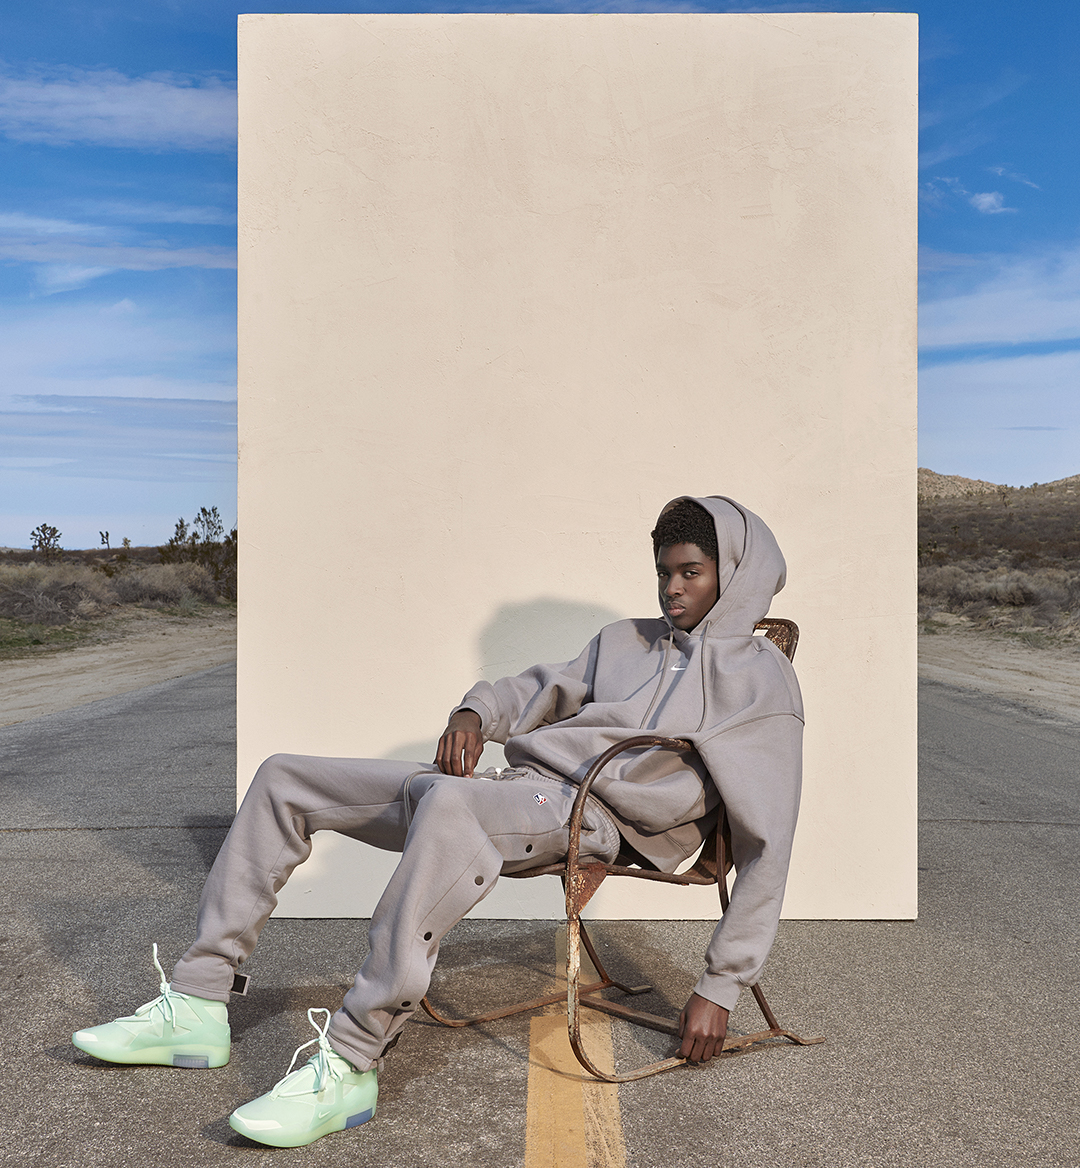 nike fear of god jerry lorenzo collection mobile